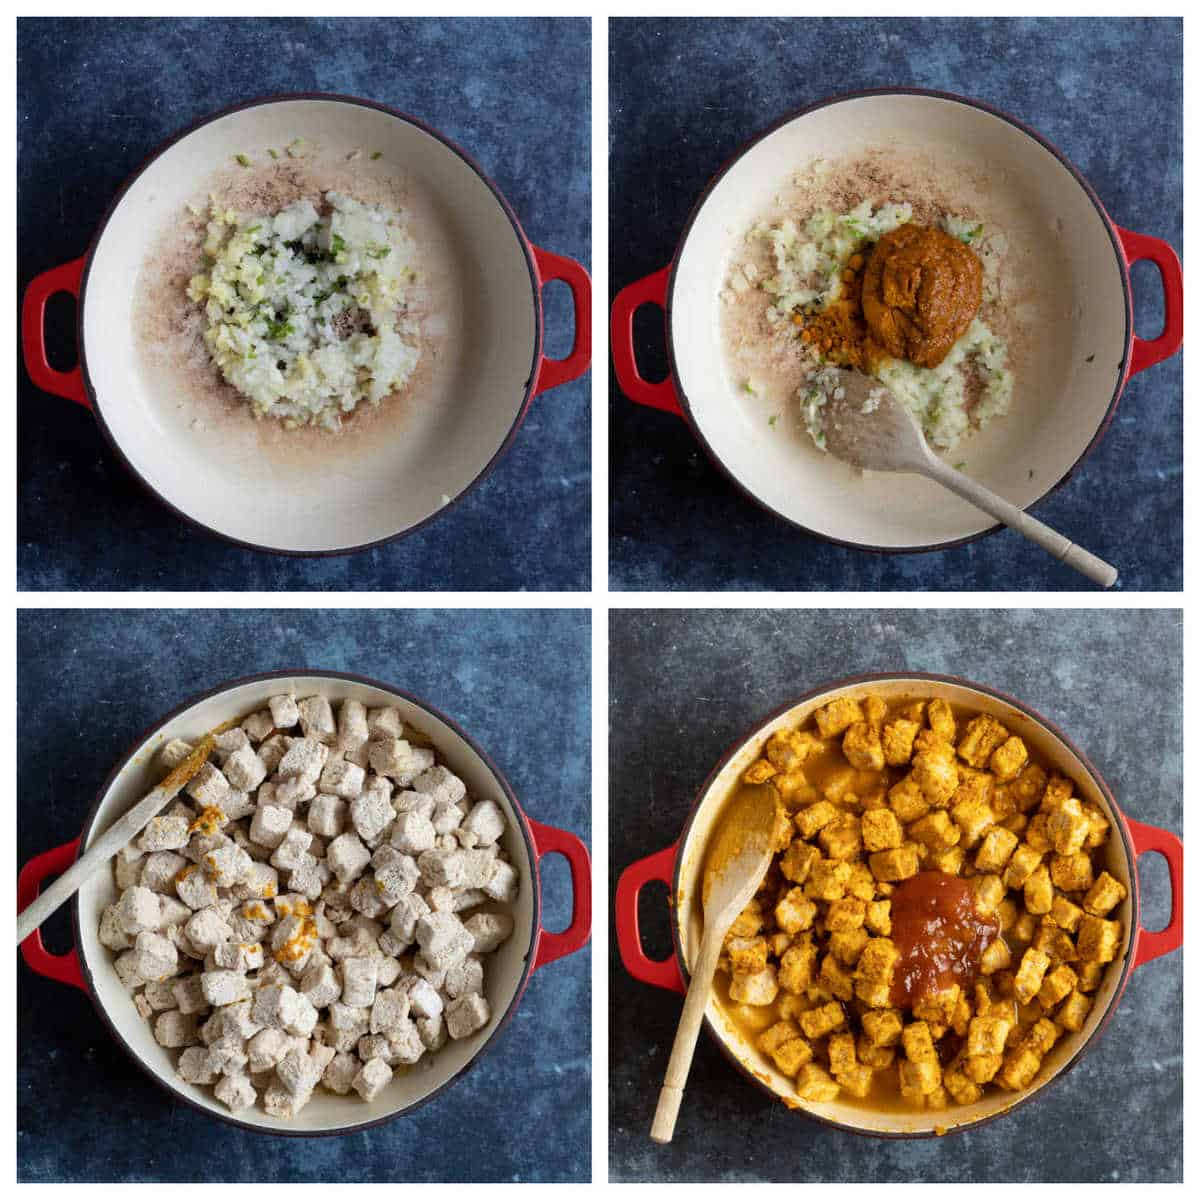 Step by step photo instructions for making Quorn curry.